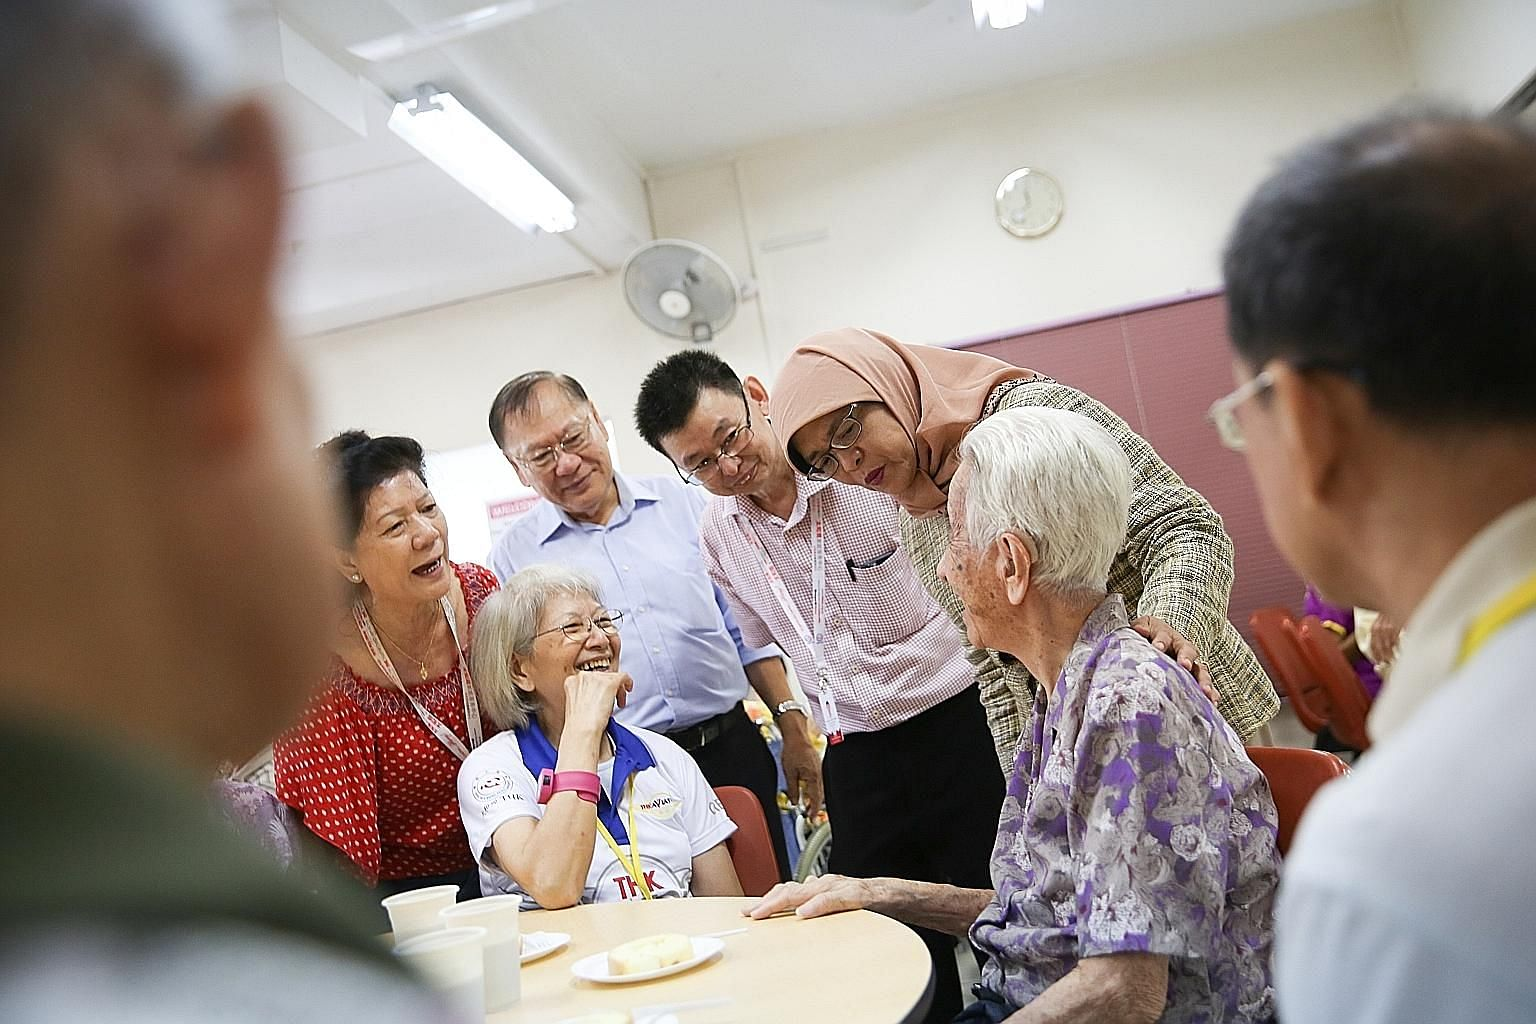 President Halimah Yacob, with THK Moral Charities chairman Lee Kim Siang (in light blue shirt), on a visit to the THK Indus Moral Care seniors activity centre in Tiong Bahru yesterday. The charity offers a drop-in disability programme at four of its